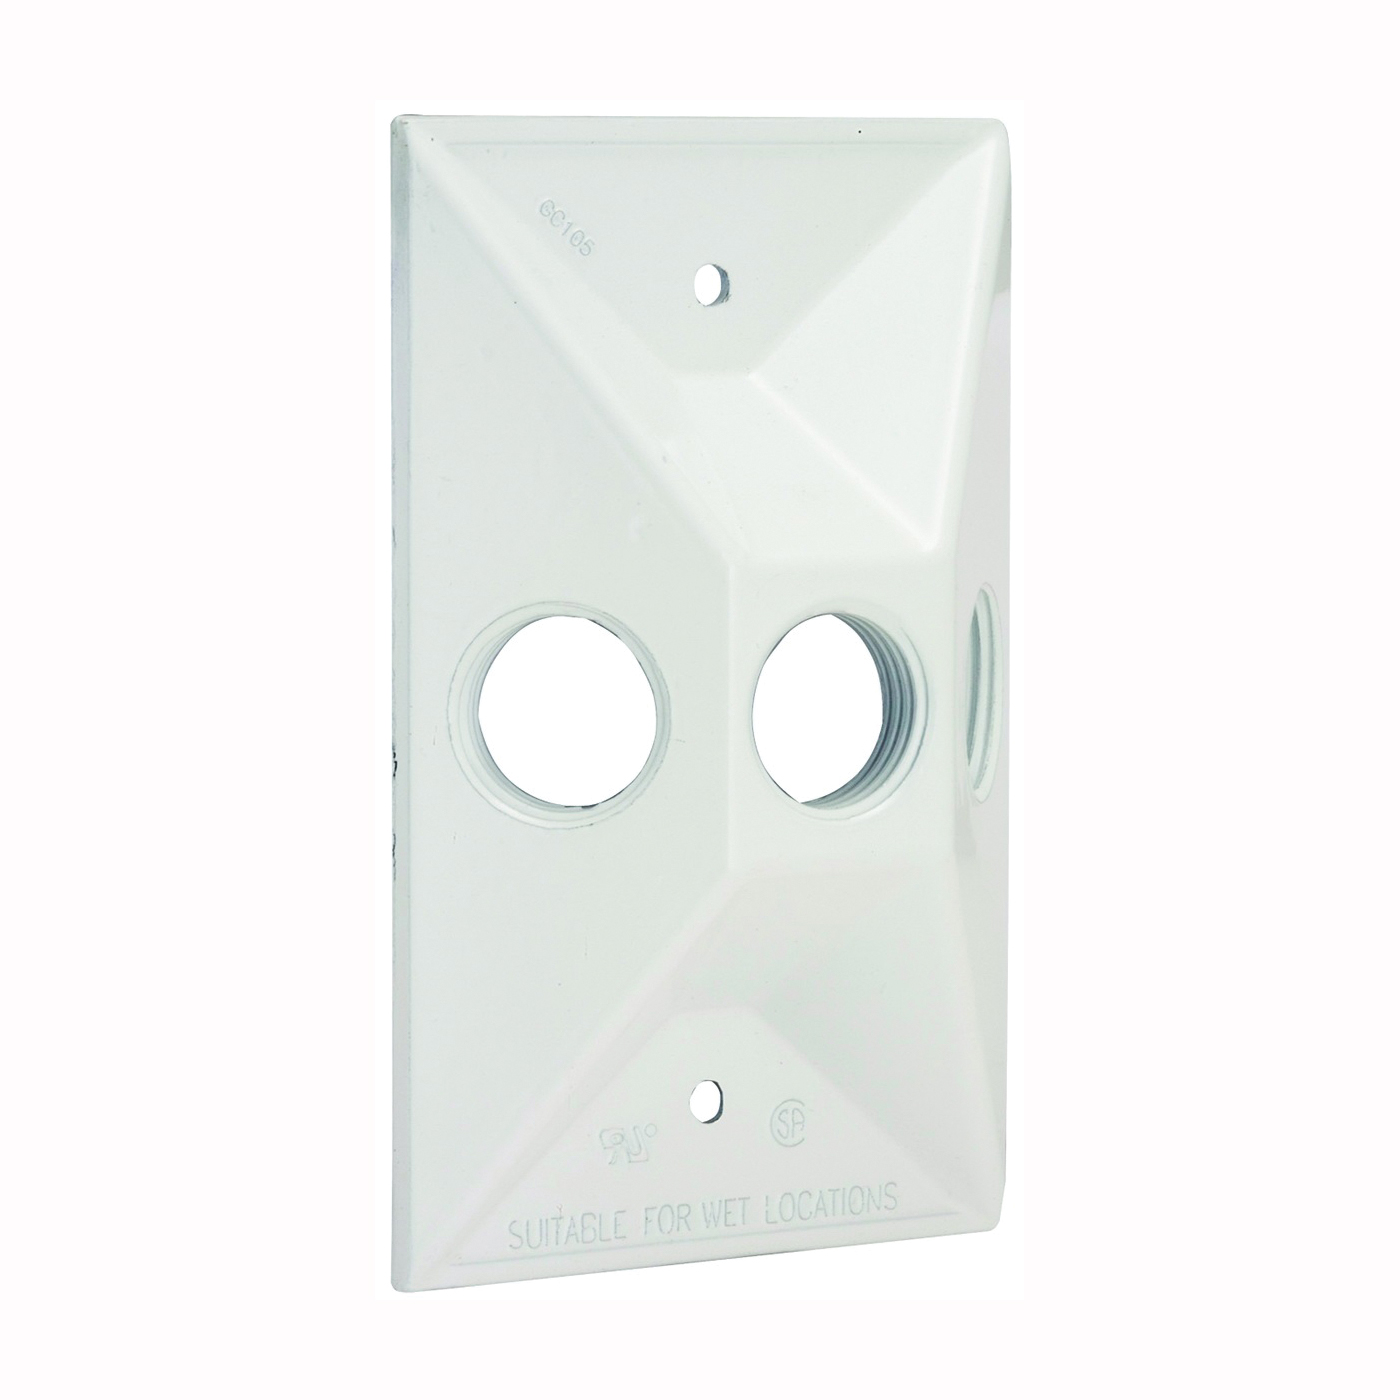 Picture of HUBBELL 5189-1 Cluster Cover, 4-19/32 in L, 2-27/32 in W, Rectangular, Zinc, White, Powder-Coated